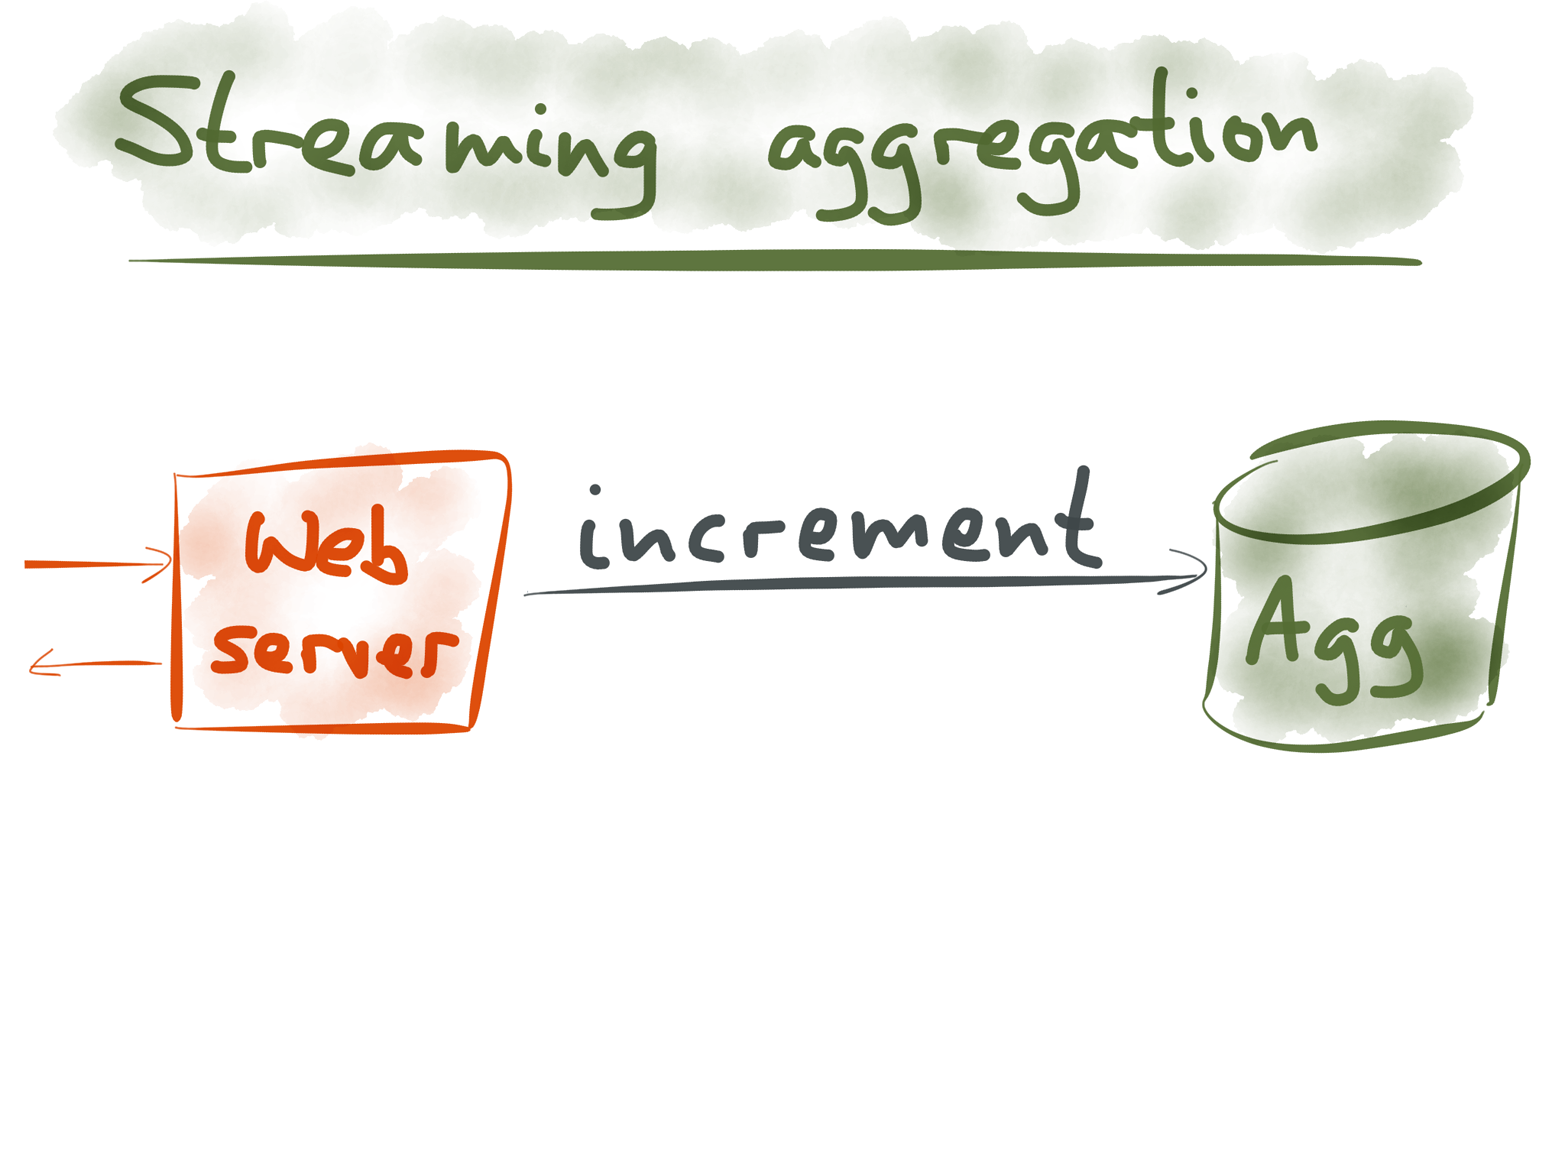 The simplest implementation of streaming aggregation.